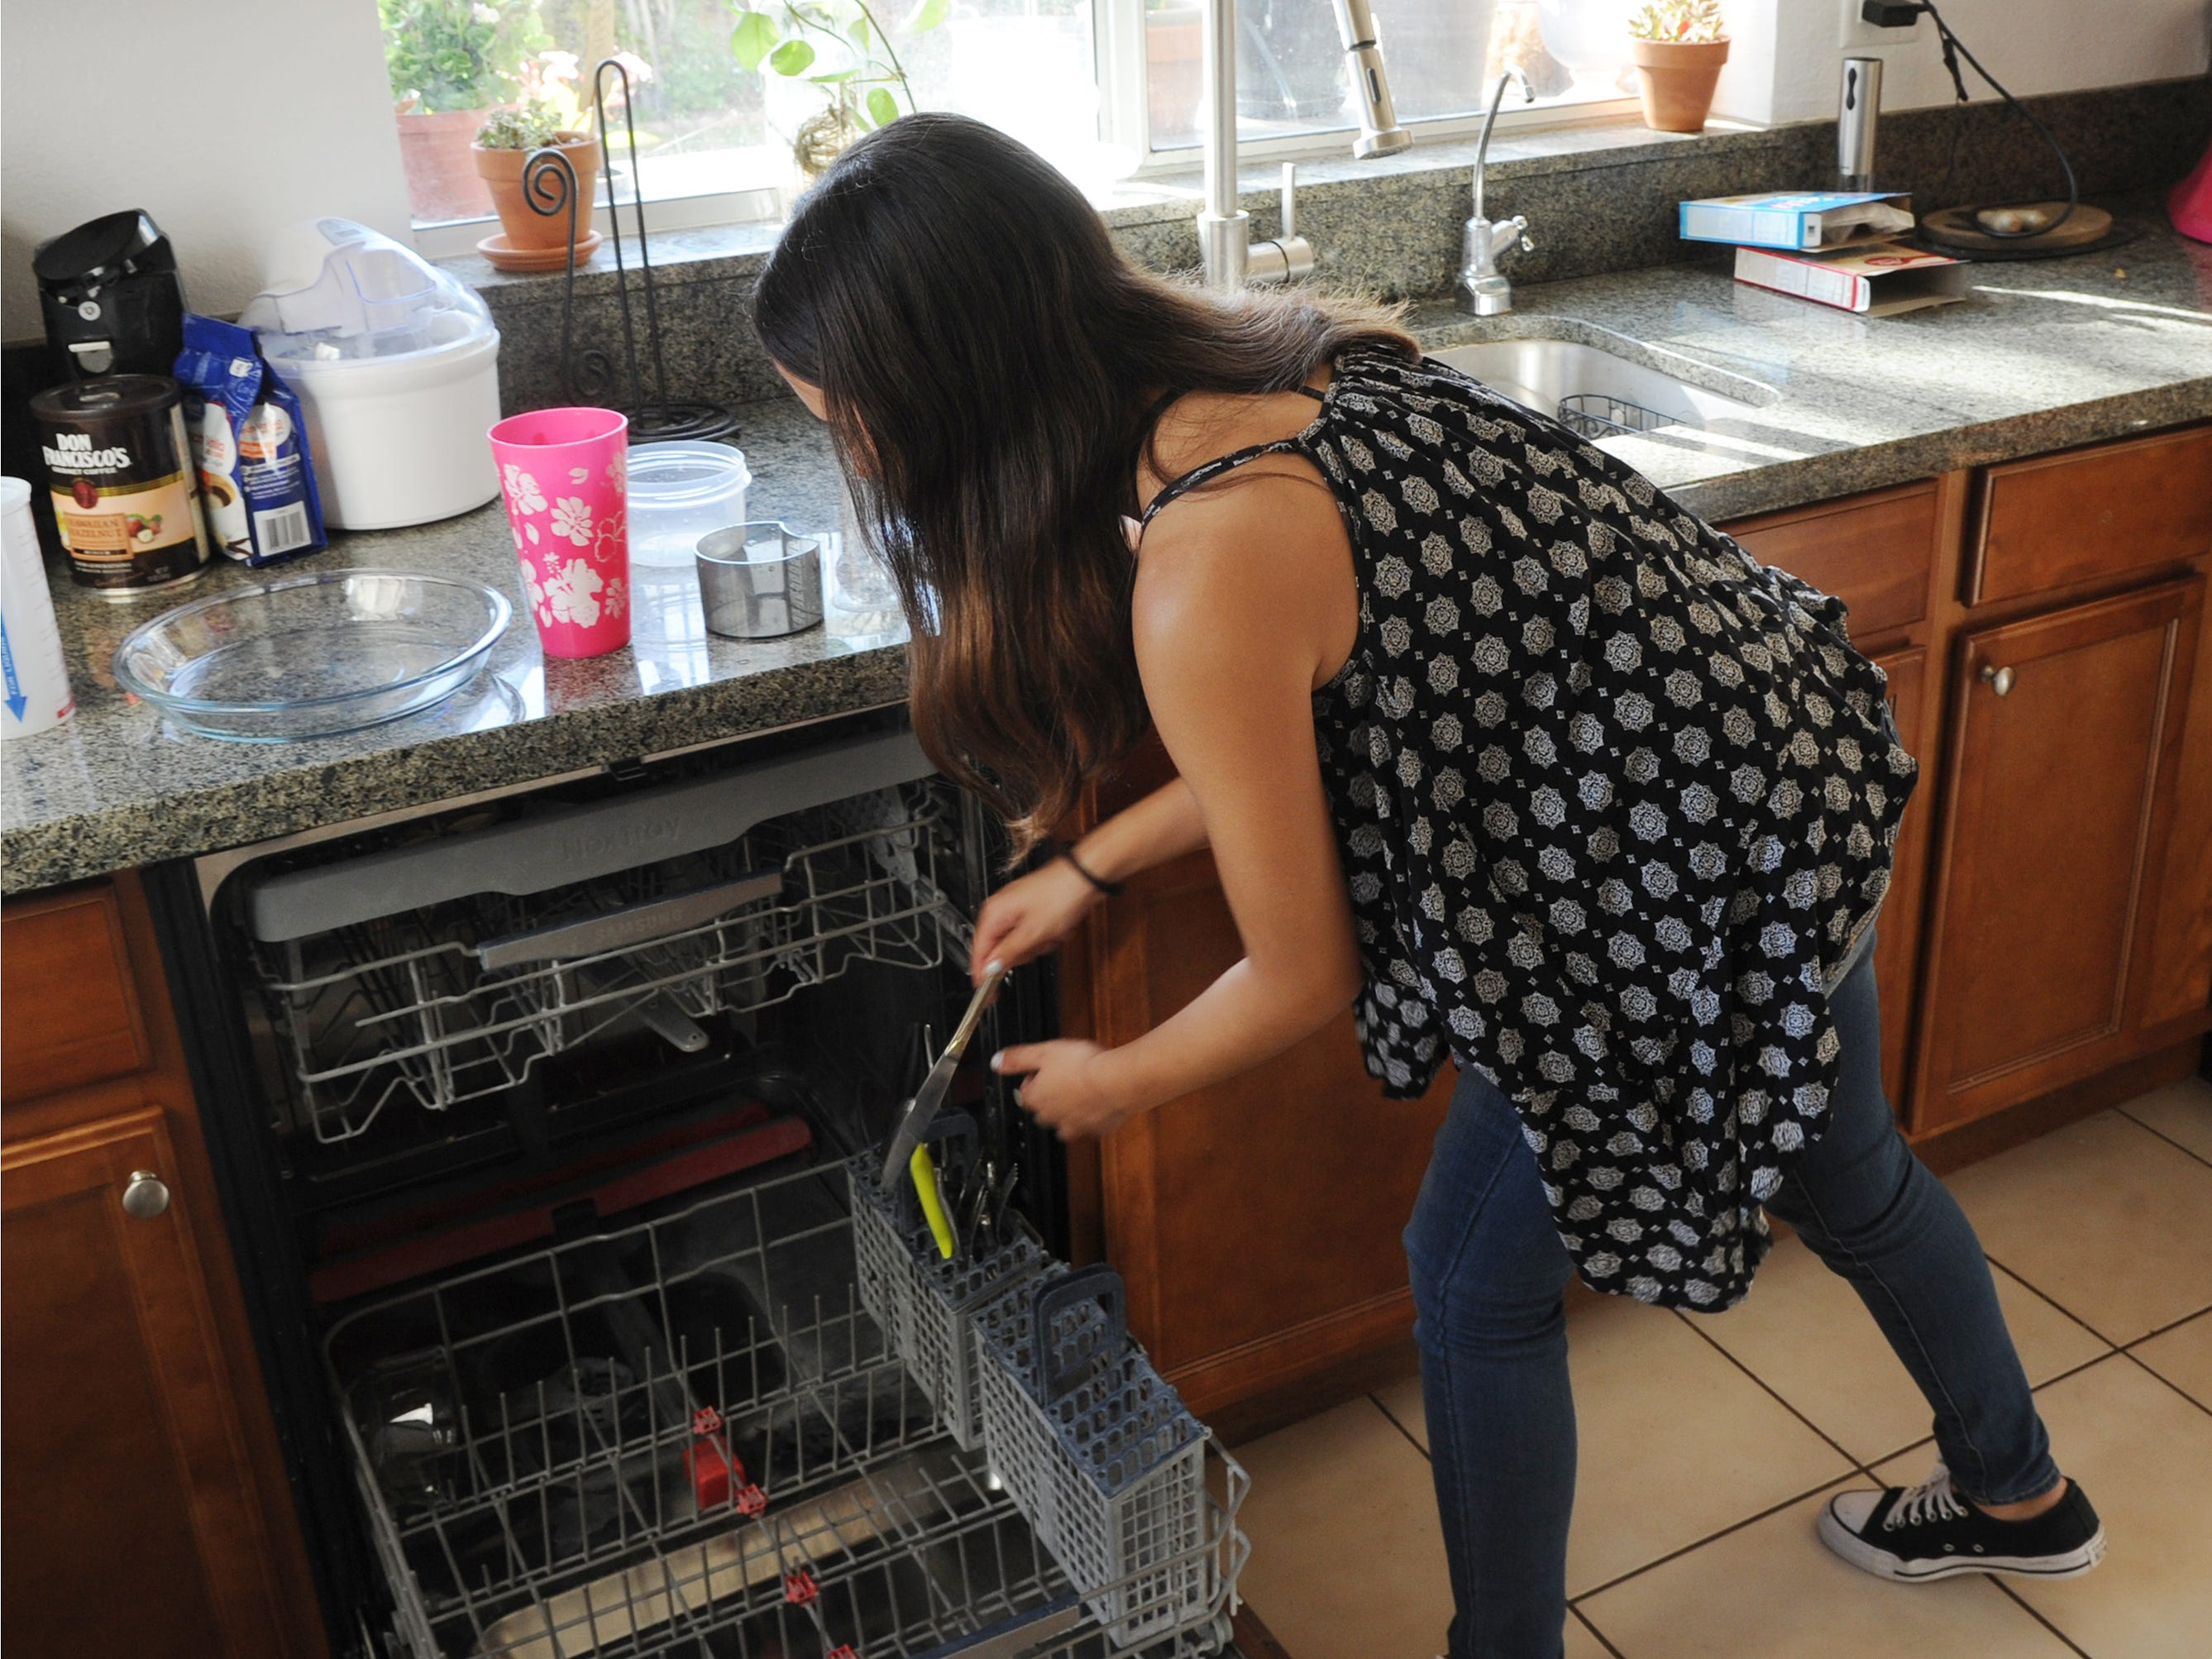 Angie works in the kitchen of the Oxnard home she shares with her foster mother.